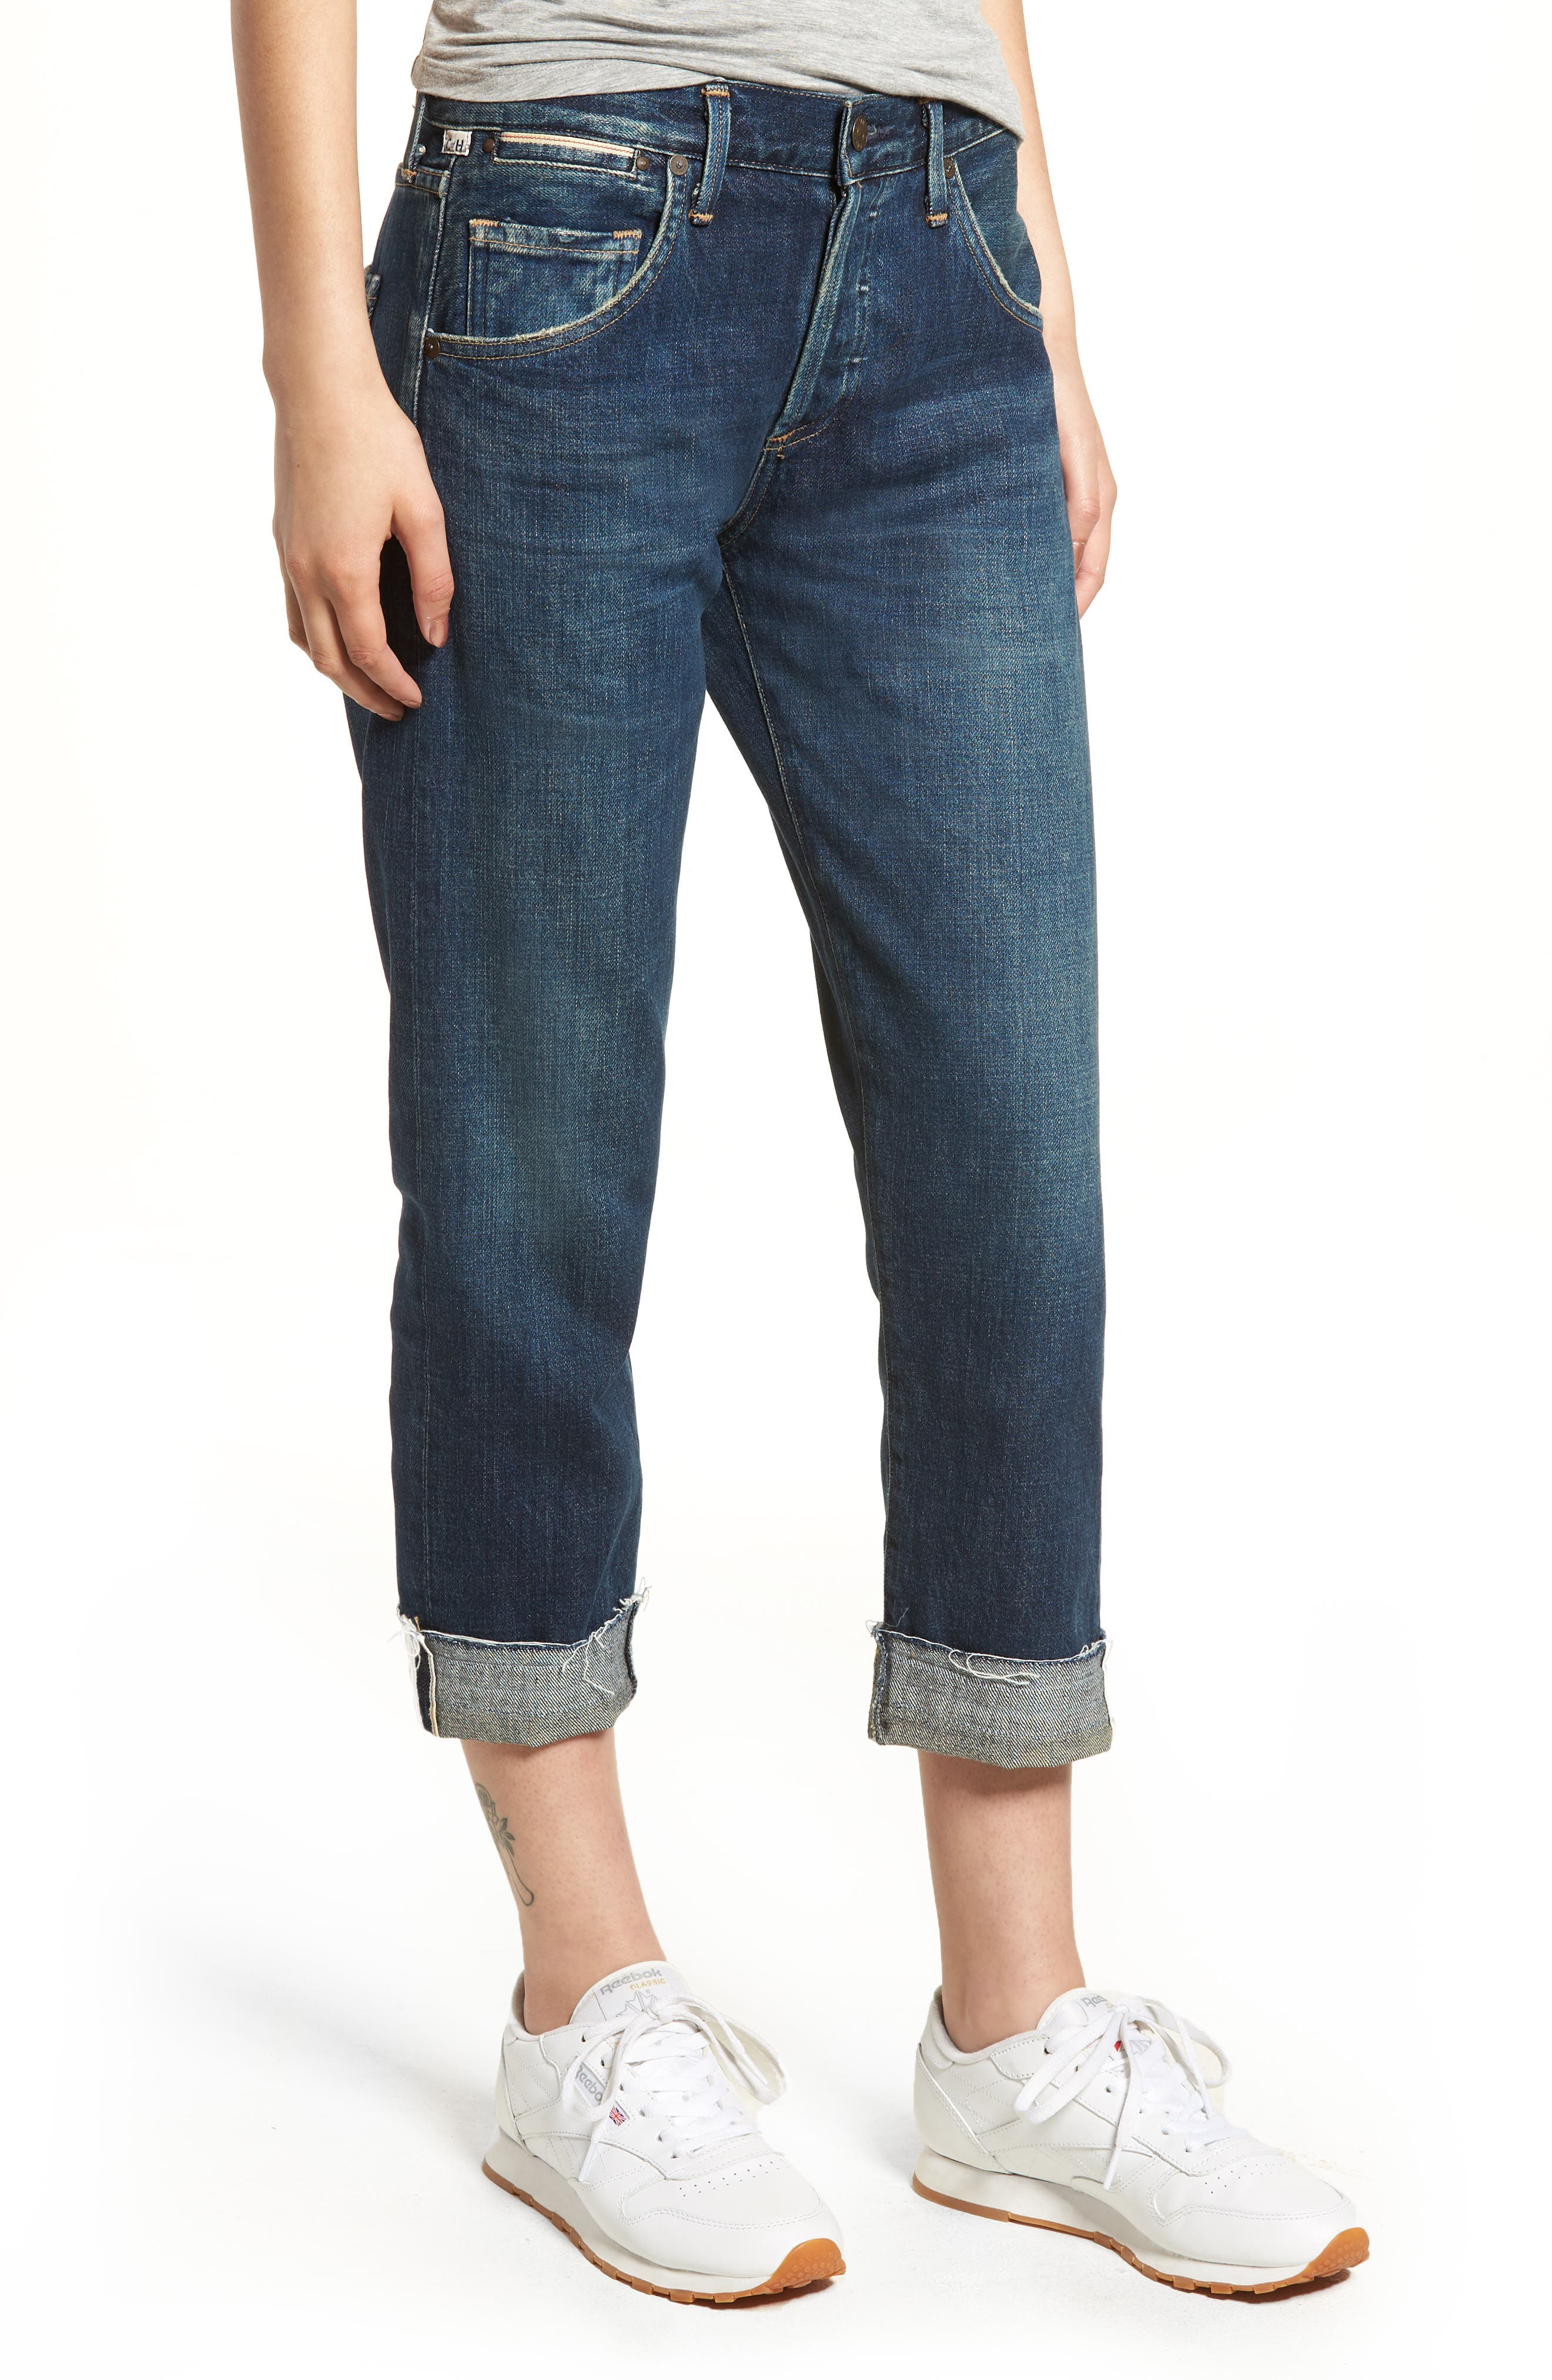 CITIZENS OF HUMANITY Emerson Crop Slim Boyfriend Jeans, Main, color, WHITAKER